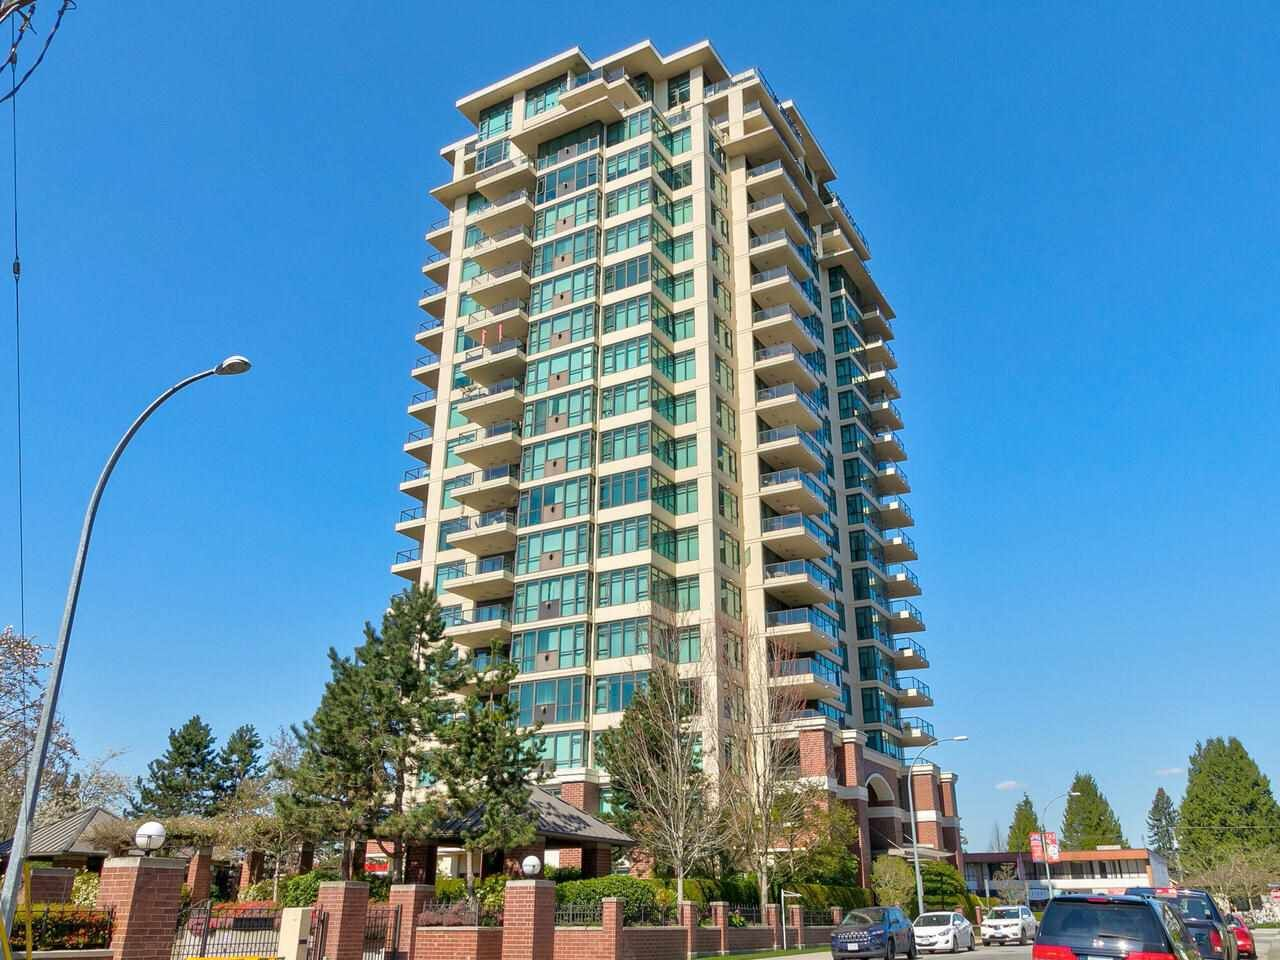 """Main Photo: 903 615 HAMILTON Street in New Westminster: Uptown NW Condo for sale in """"The Uptown"""" : MLS®# R2569746"""